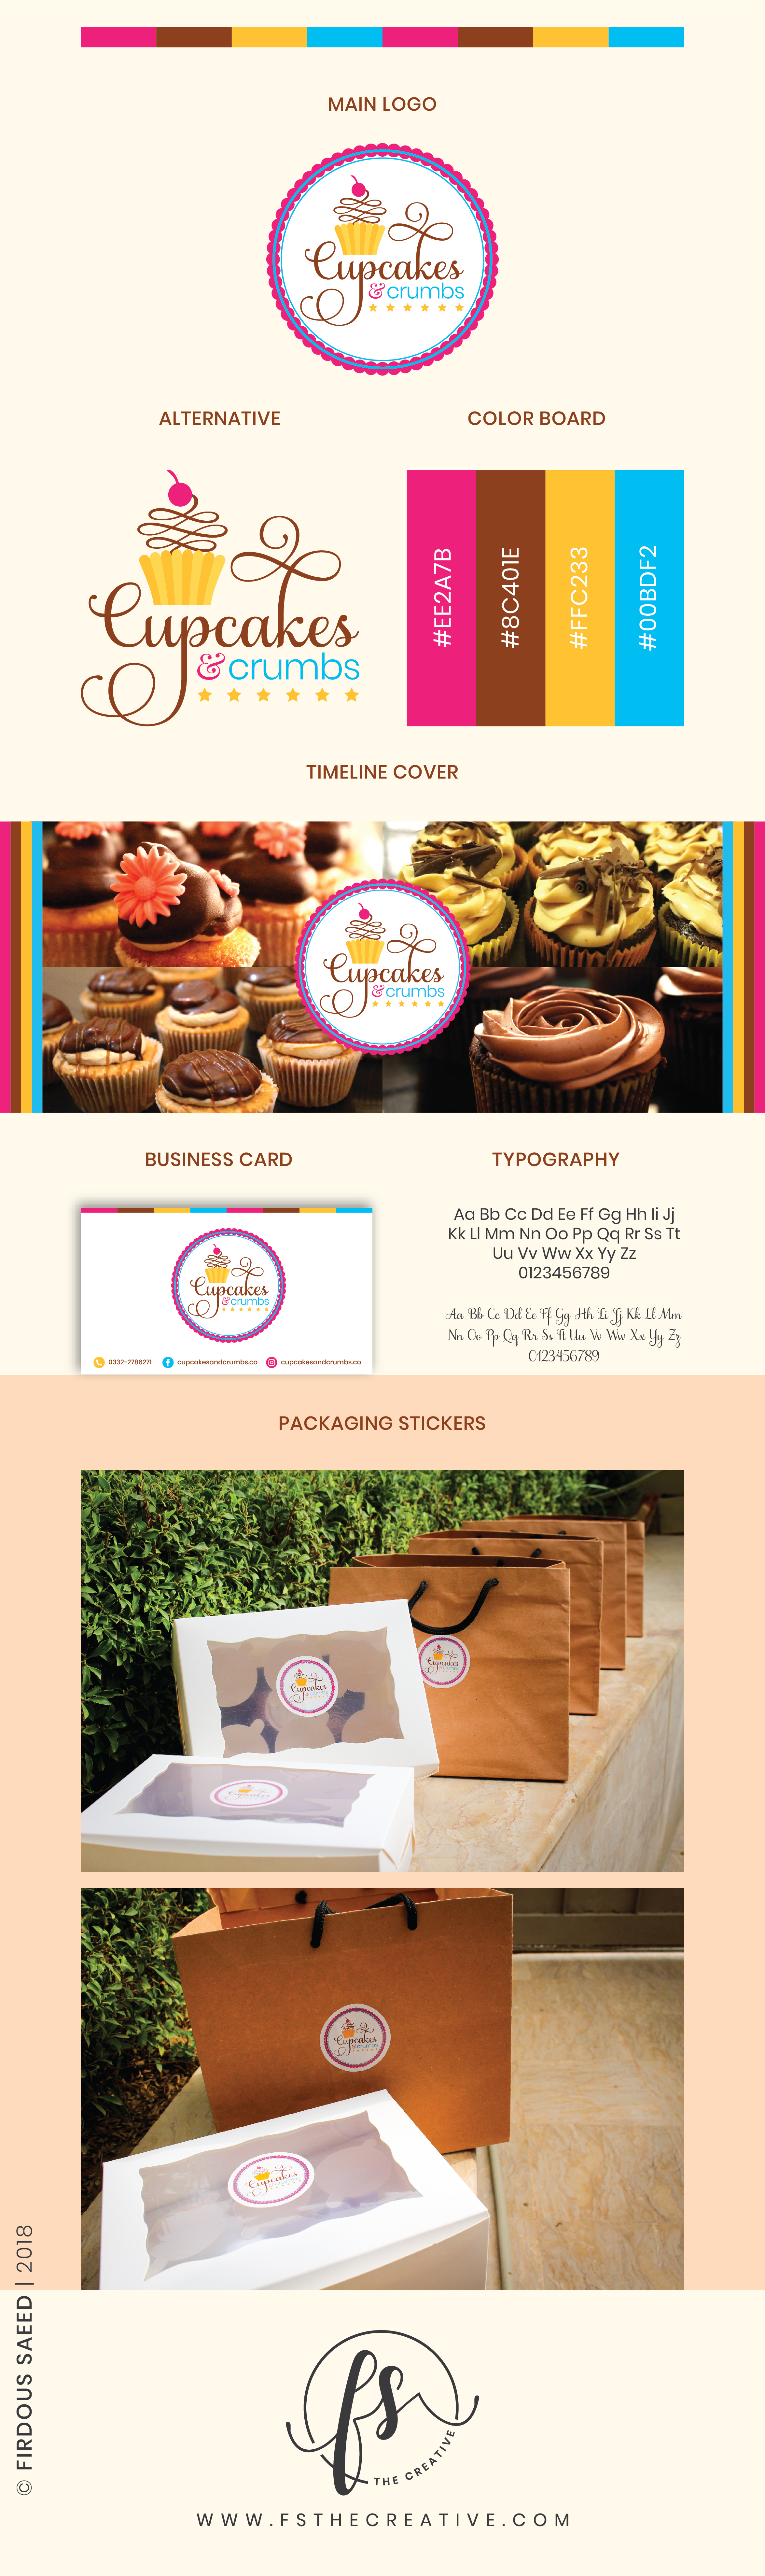 Cupcakes and Crumbs Pakistan. Brand Identity Design by FS - The Creative